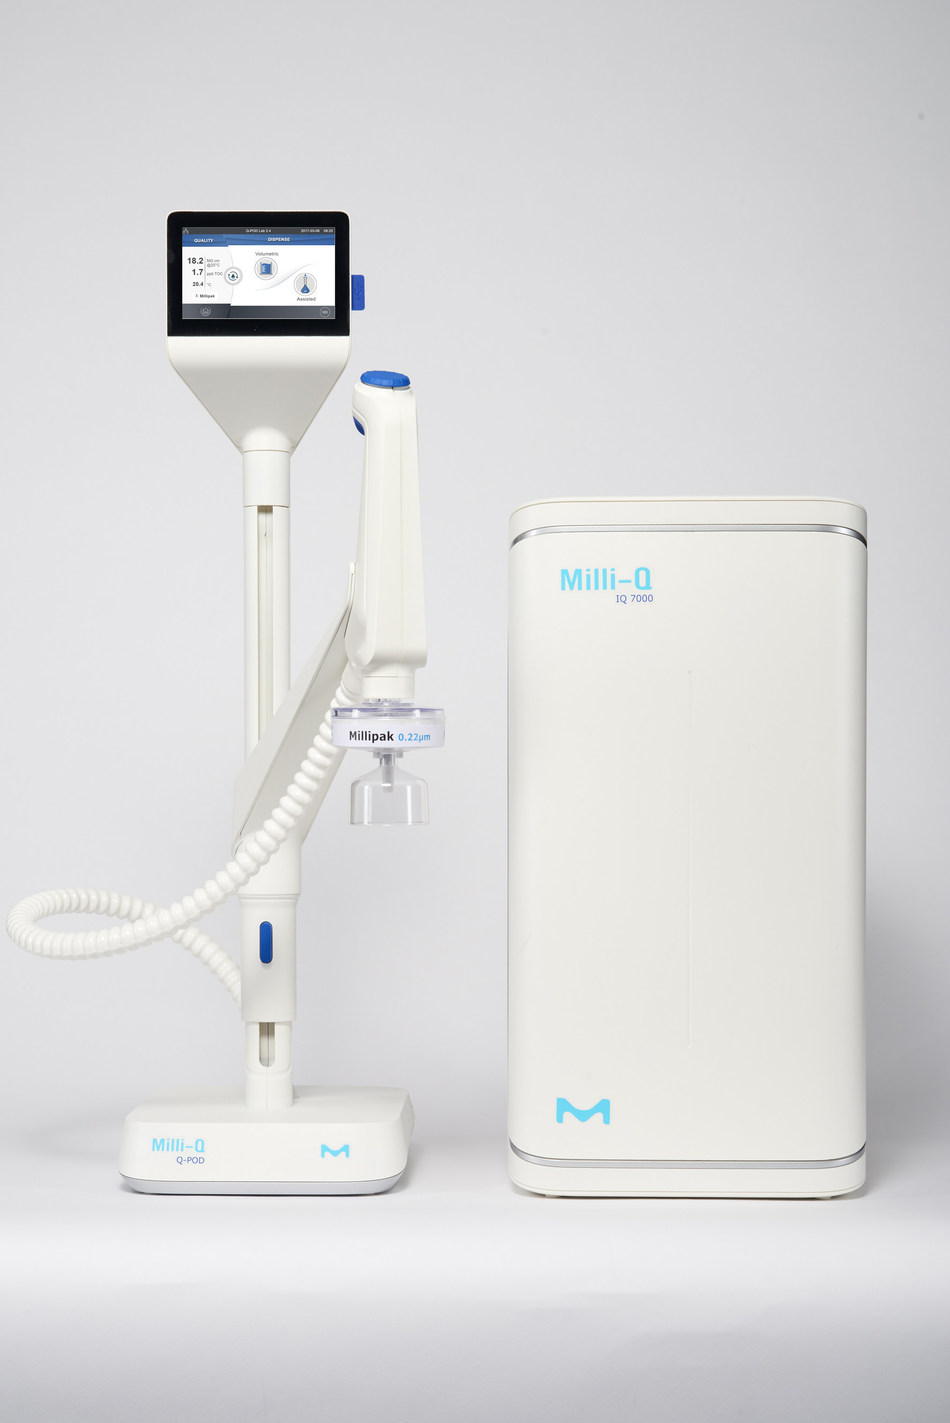 MilliporeSigma's customers are looking for compact, ergonomic systems and software so they can advance science, further faster. The Milli-Q(R) IQ 7000  lab water purification system allows scientists to focus on problem solving, without worrying about the purity of their water. MilliporeSigma's latest product reflects its legacy of pioneering innovations in lab water purification. (PRNewsFoto/MilliporeSigma)